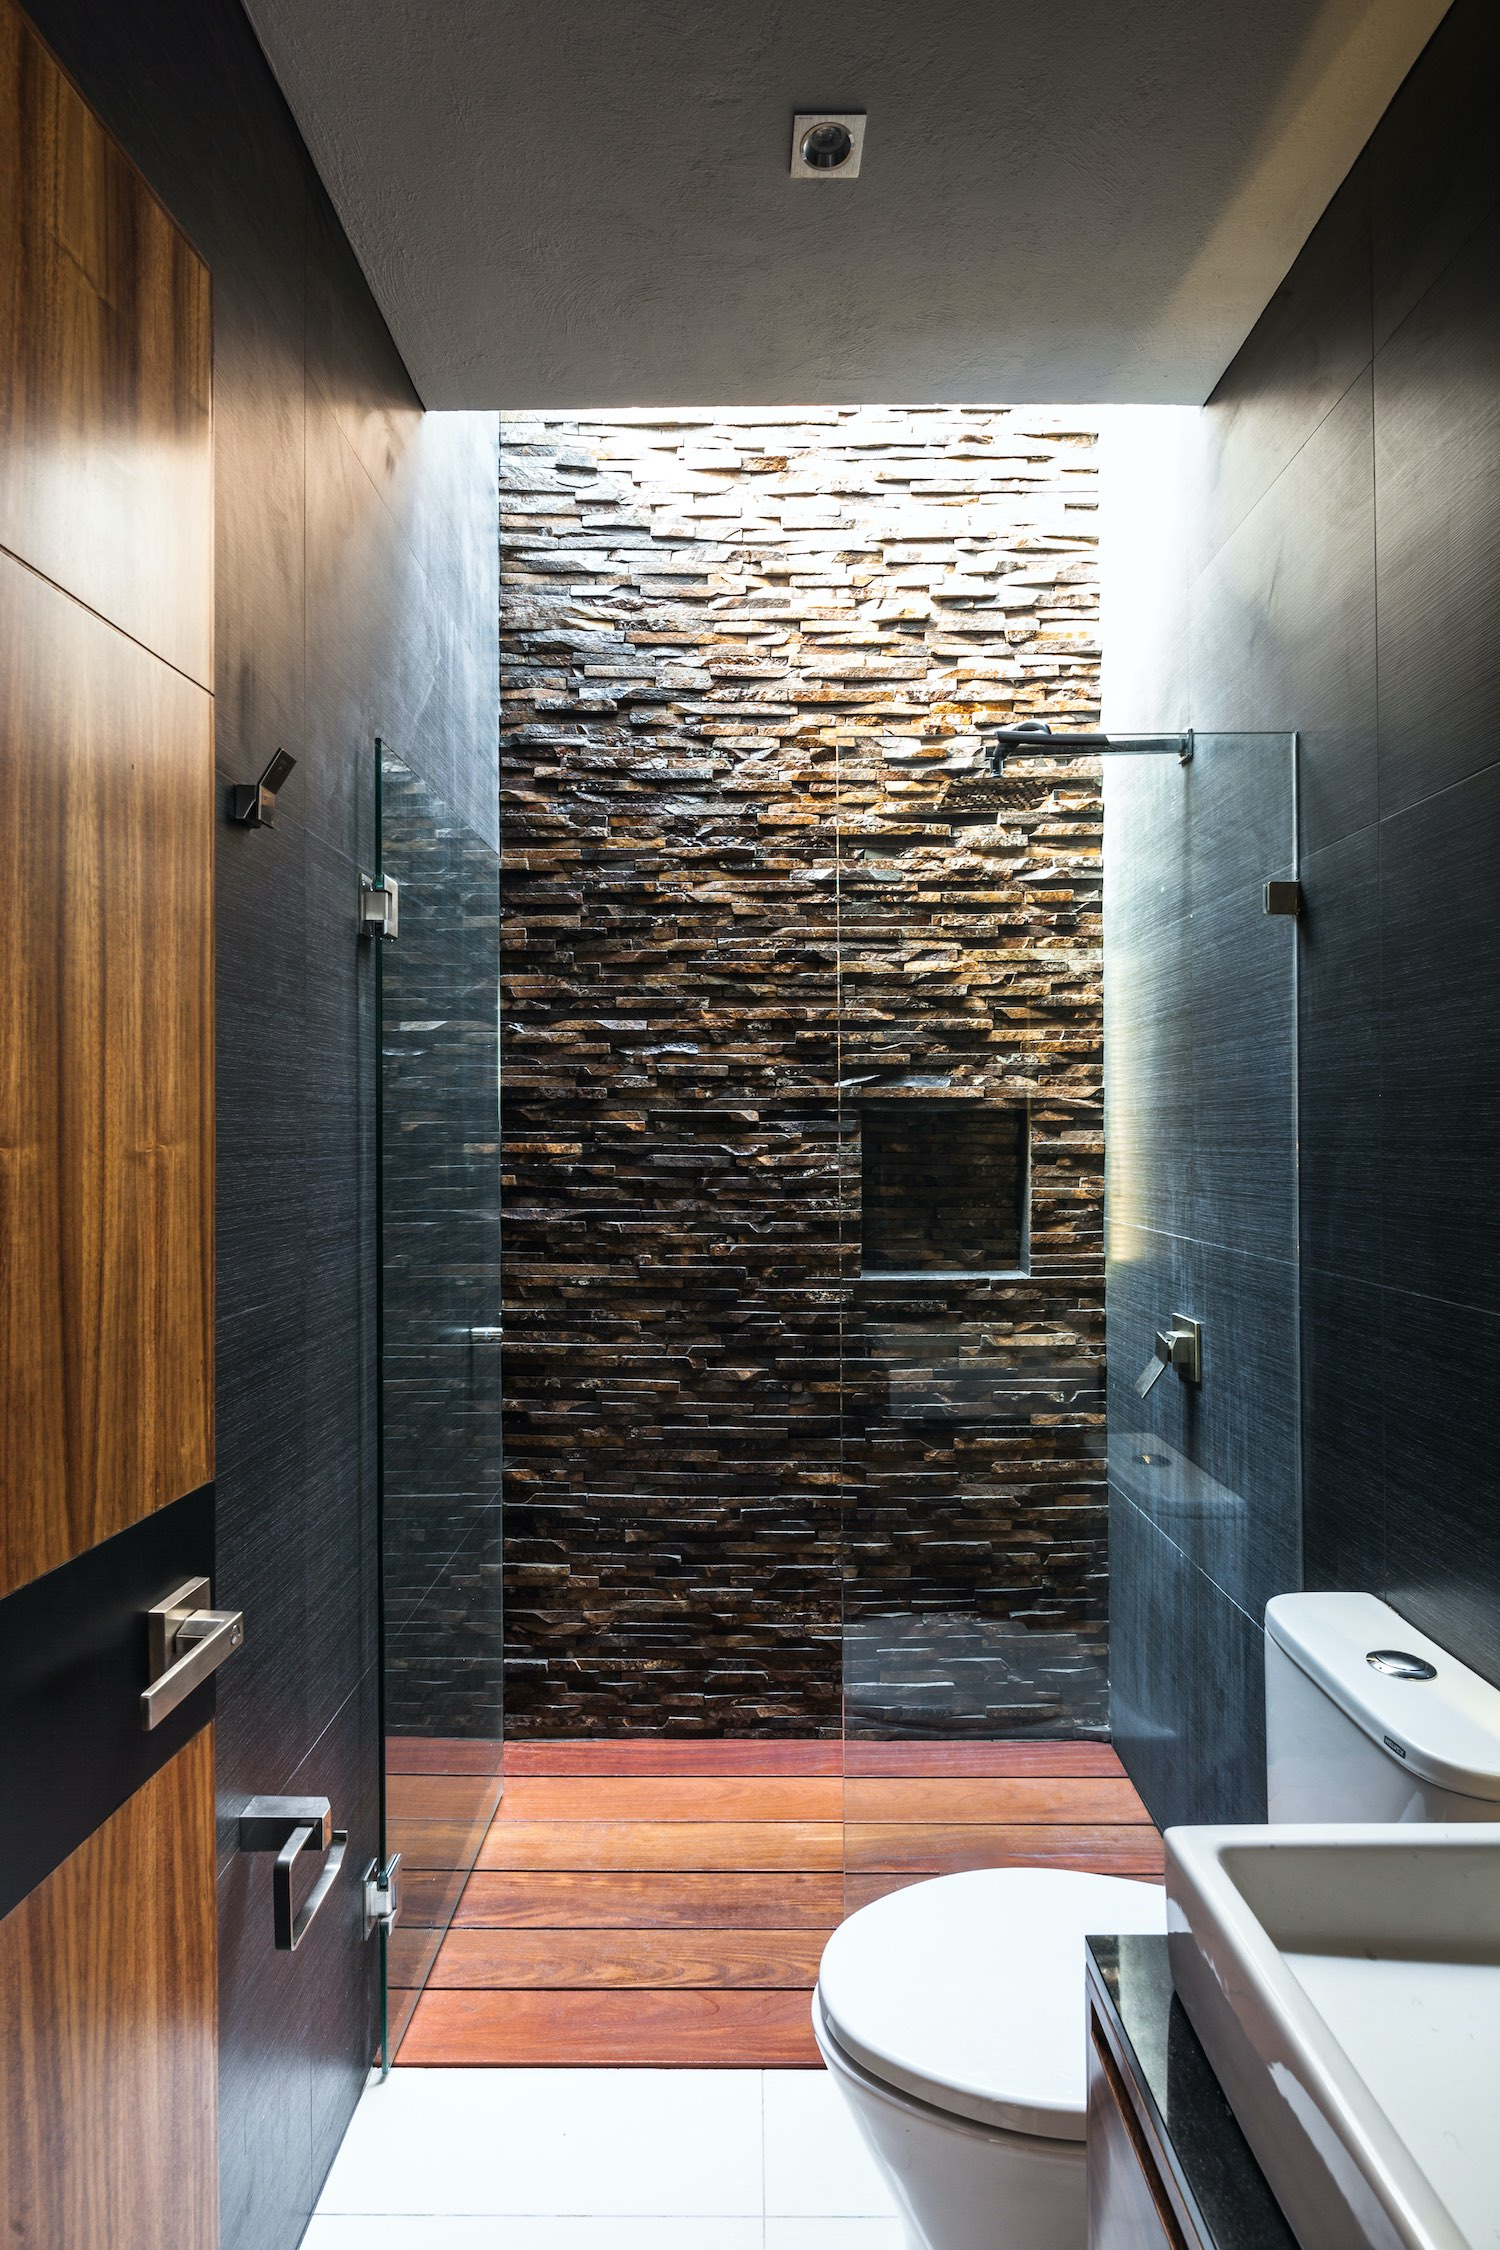 bathroom with wooden parquet floor and stone wall